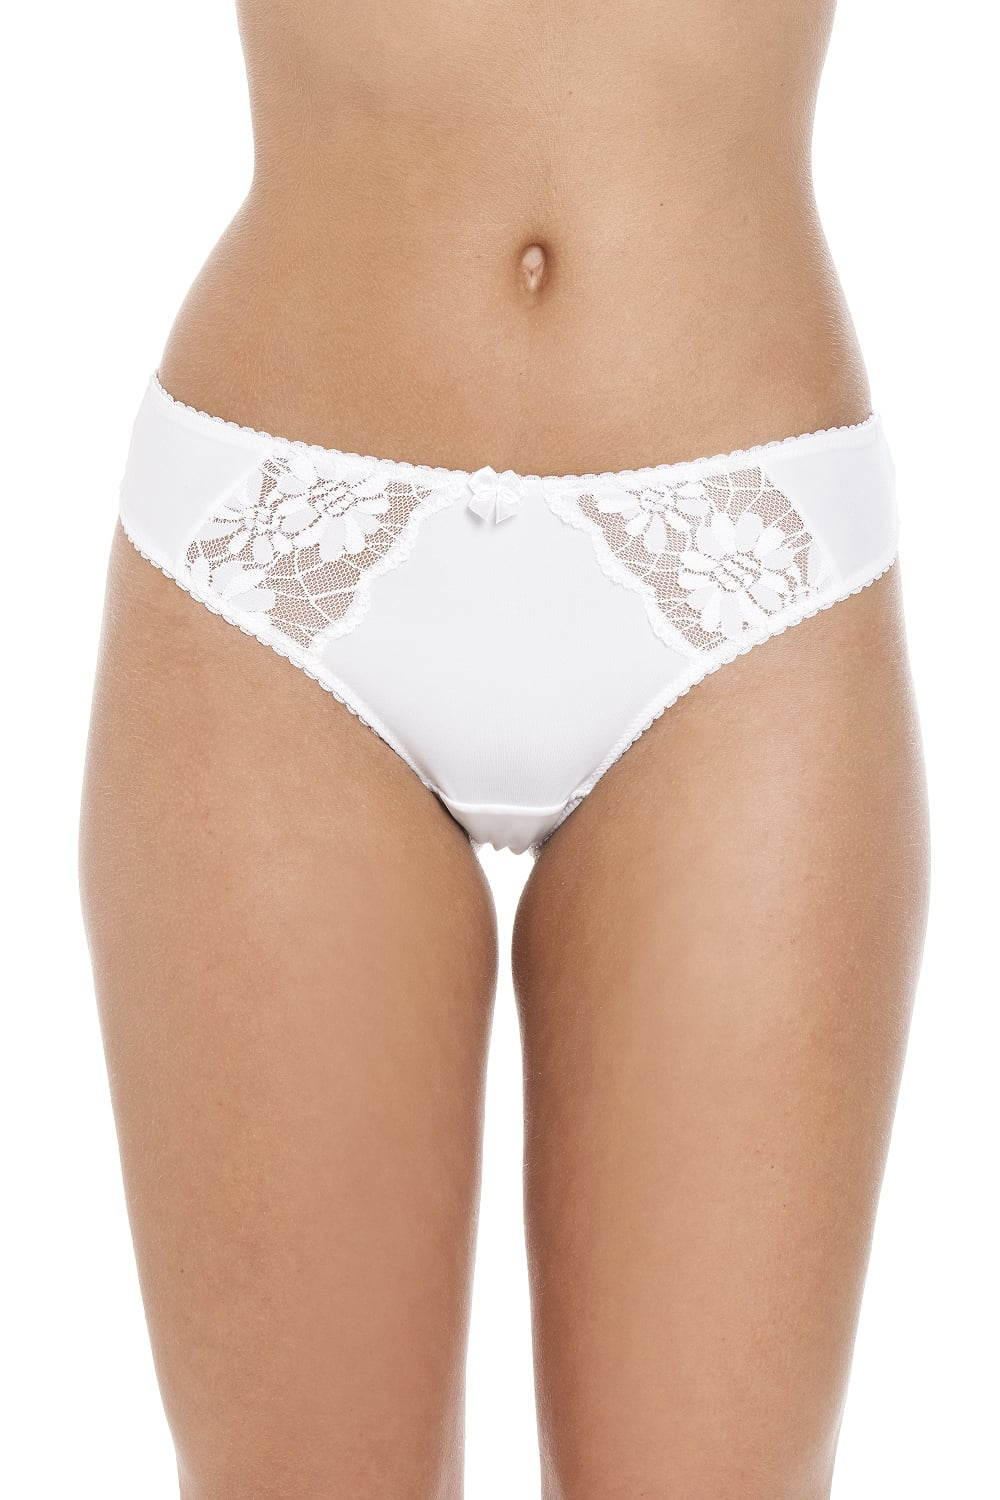 22217c6c1 New Ladies Camille Lingerie Lace Thongs Womens White Underwear Sizes ...